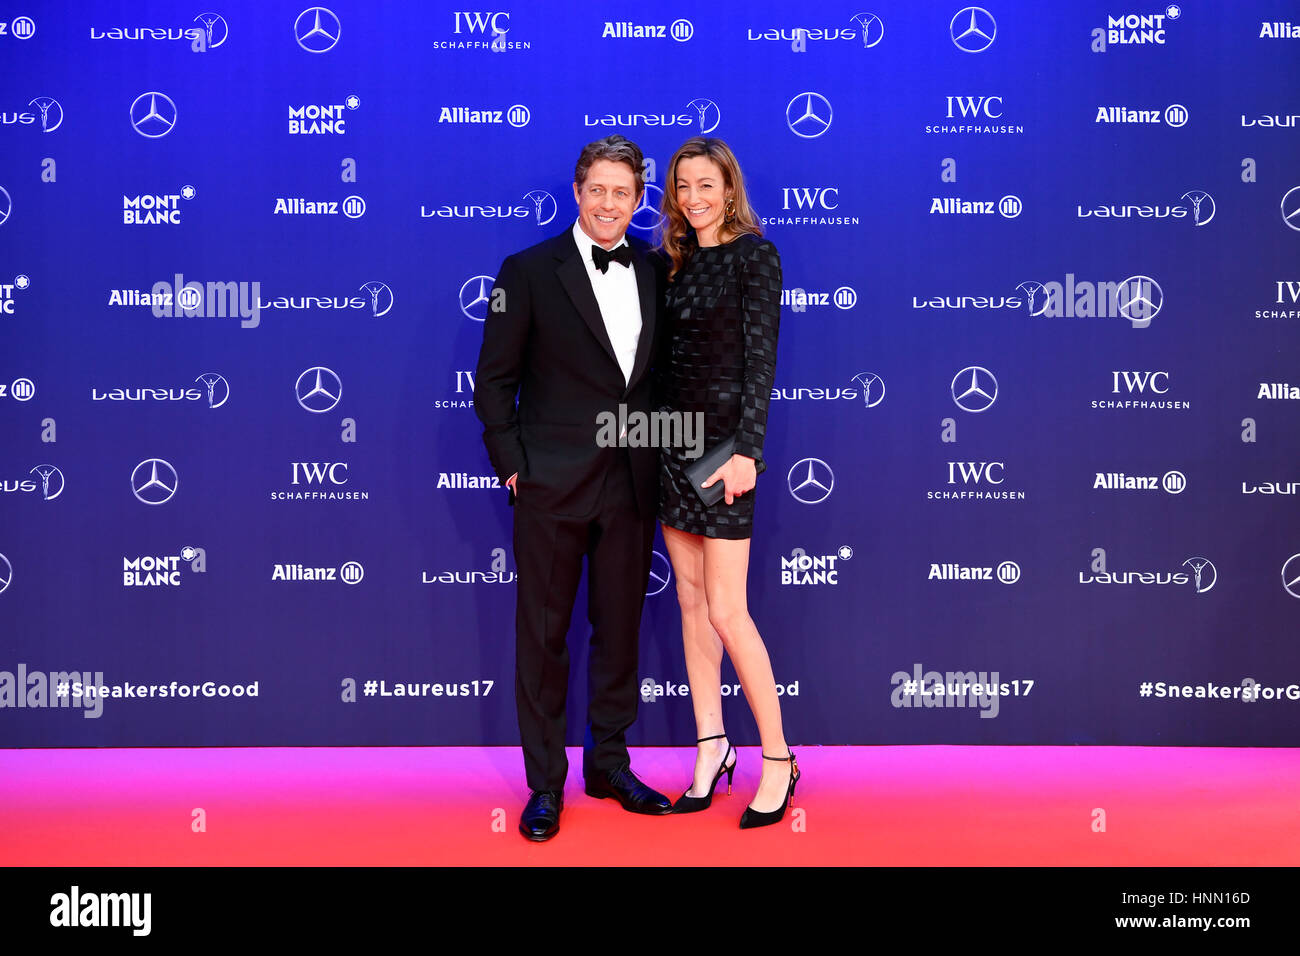 Larvotto. 14th Feb, 2017. Host Hugh Grant (L) and his guest poses for photos on the red carpet at the Laureus World - Stock Image